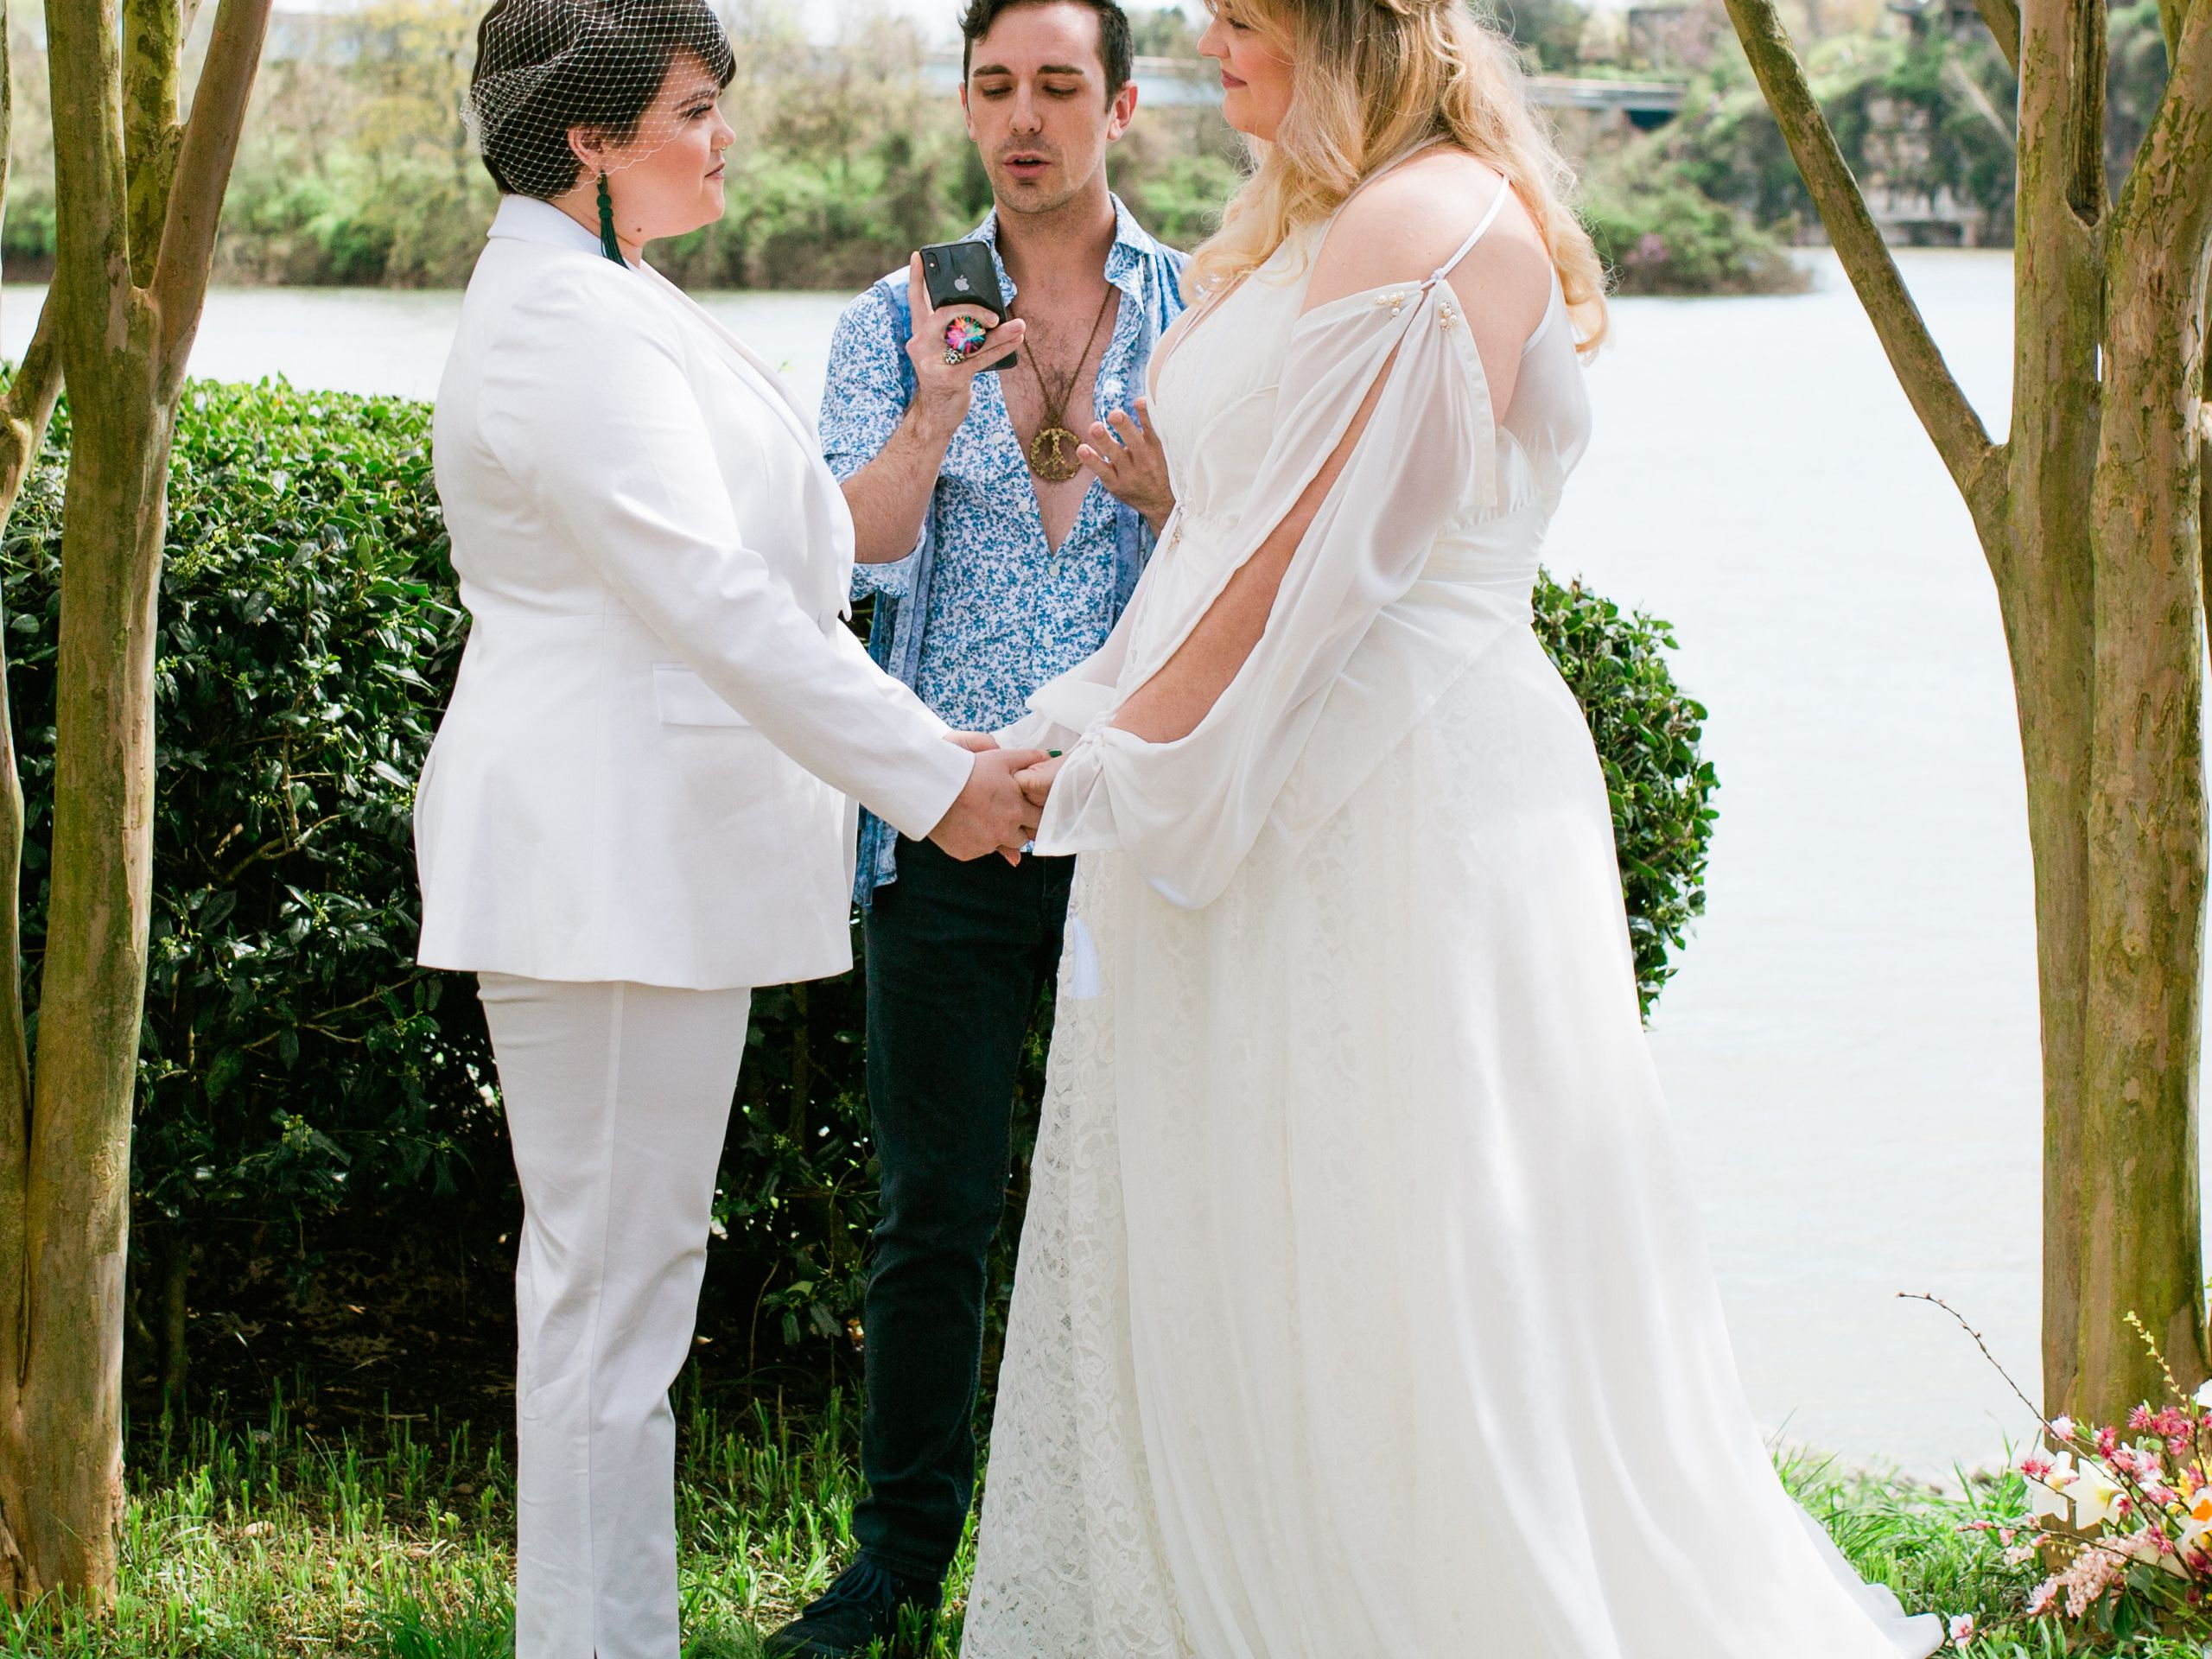 36 Real Covid 19 Weddings From Around The World